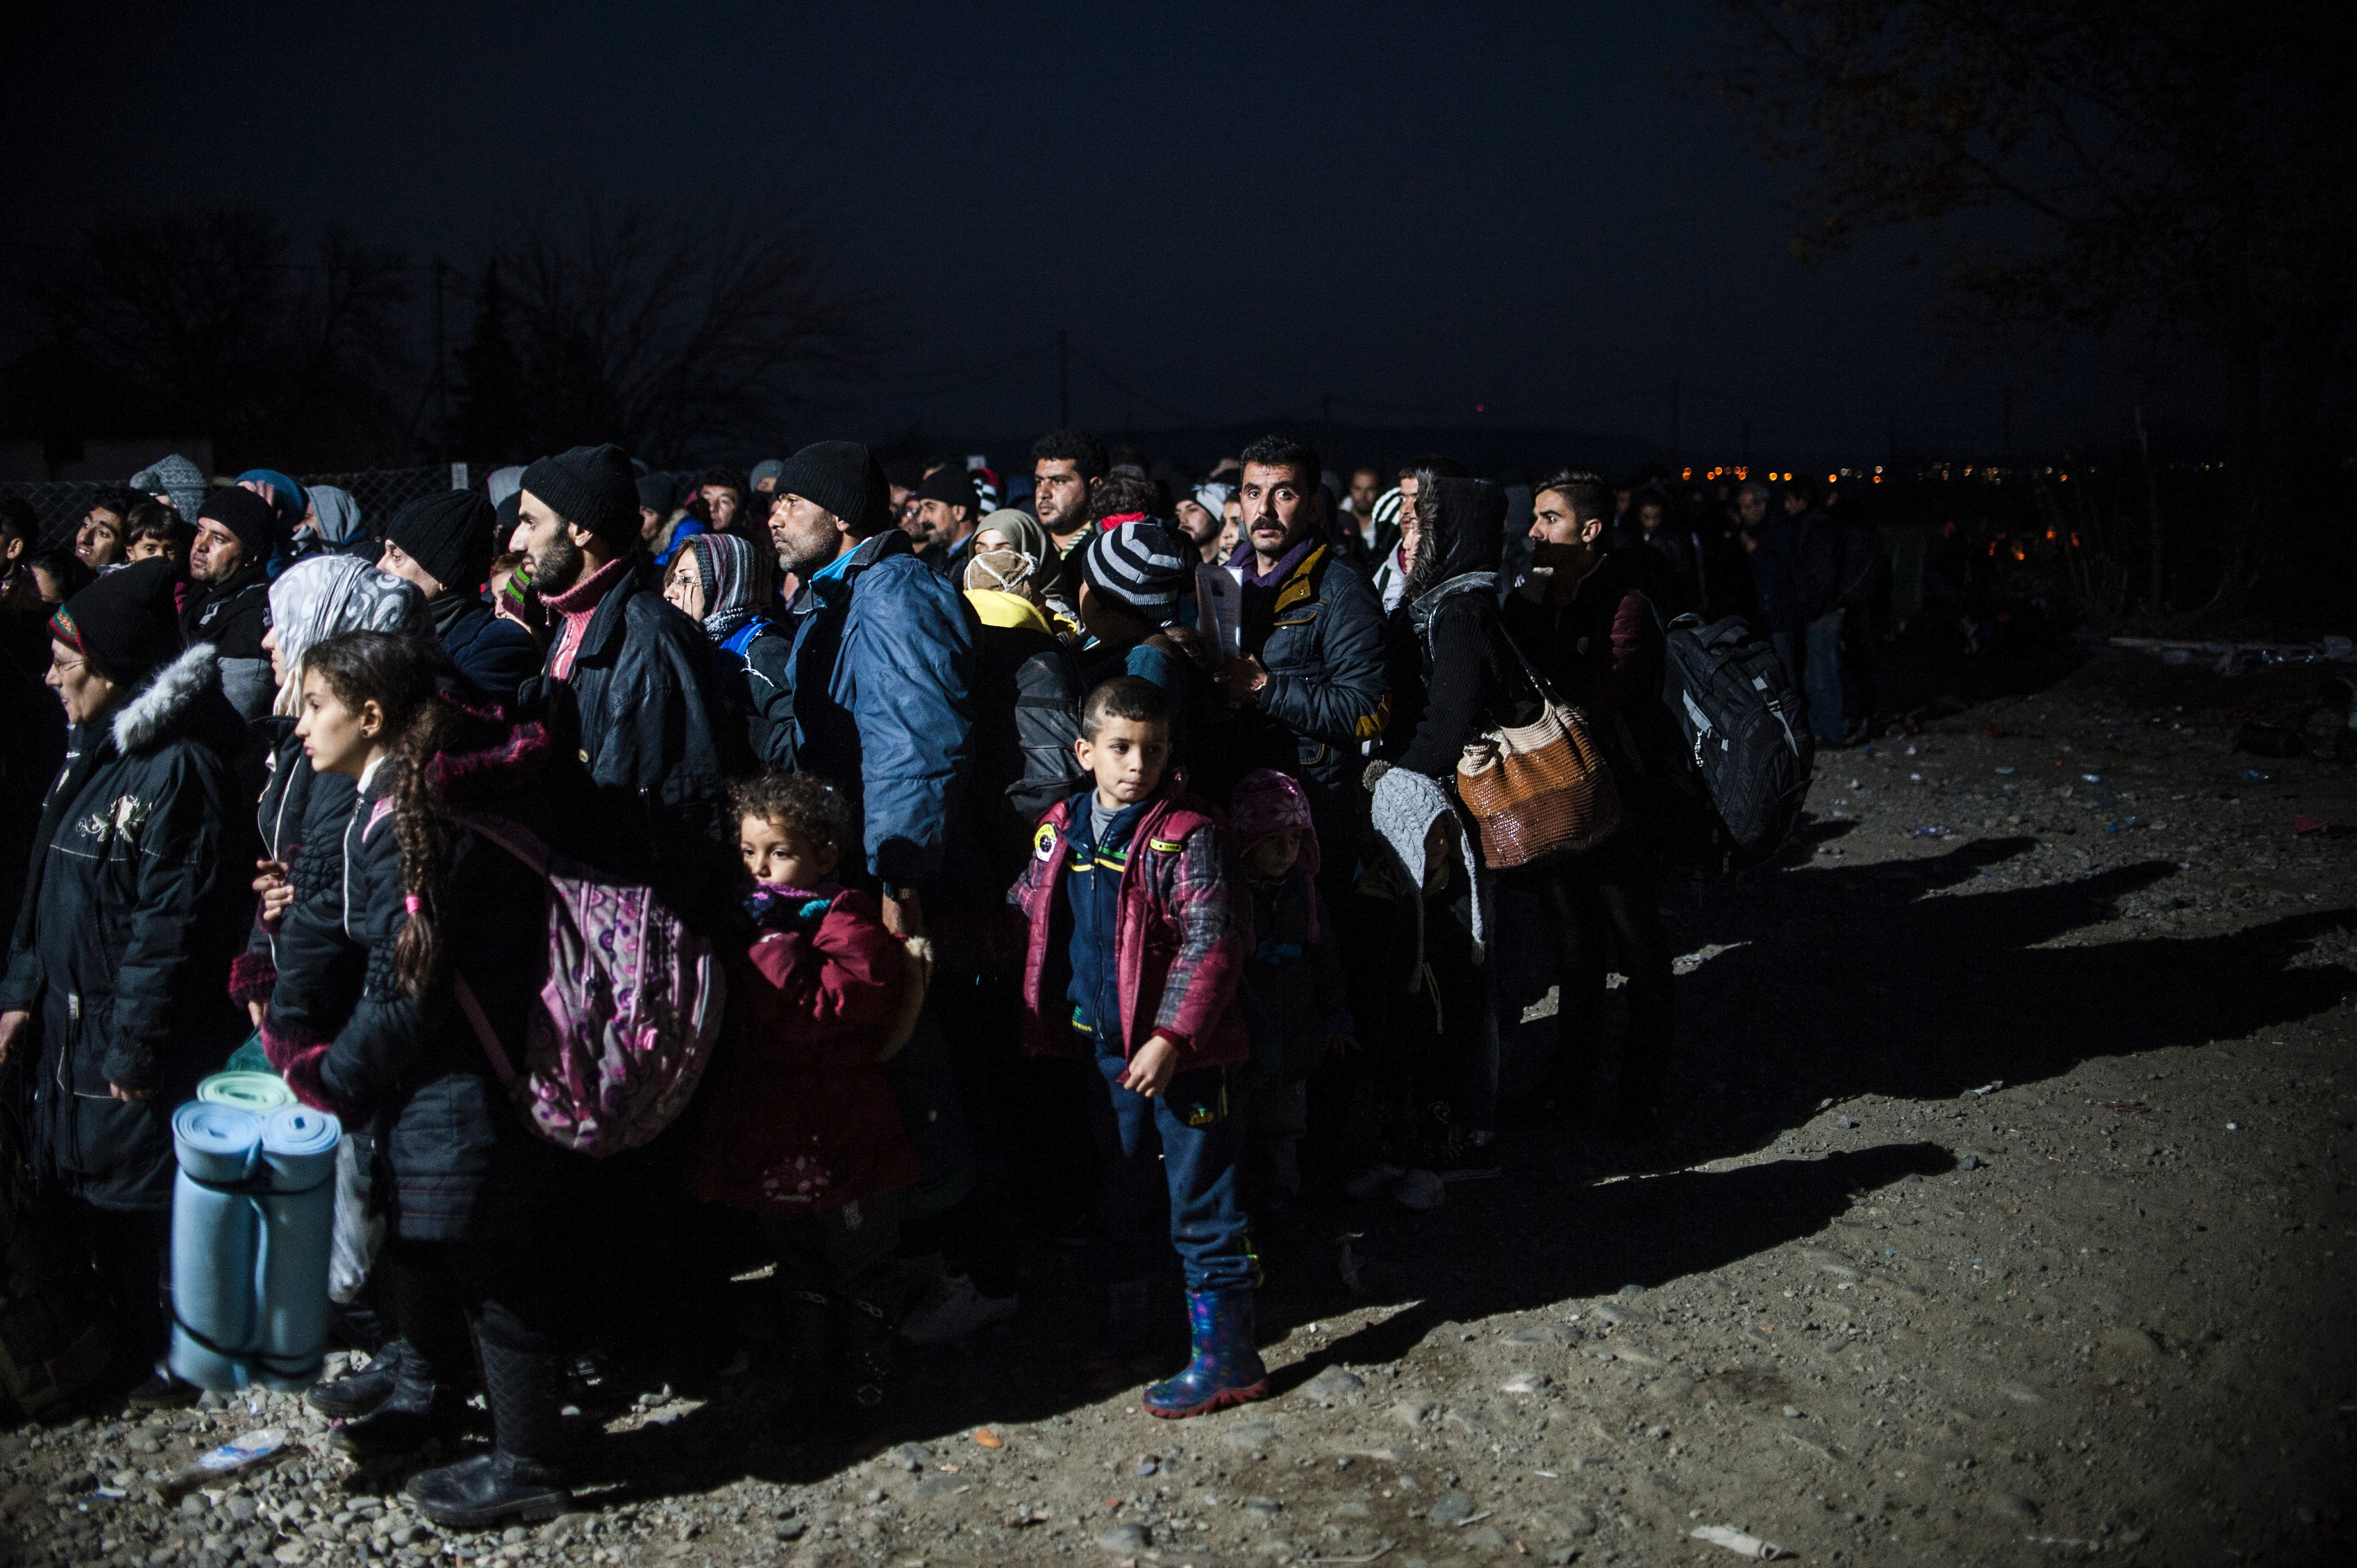 Migrants wait to enter a refugee camp after crossing the Greek-Macedonian border, near Gevgelija, Macedonia, on Dec. 5, 2015